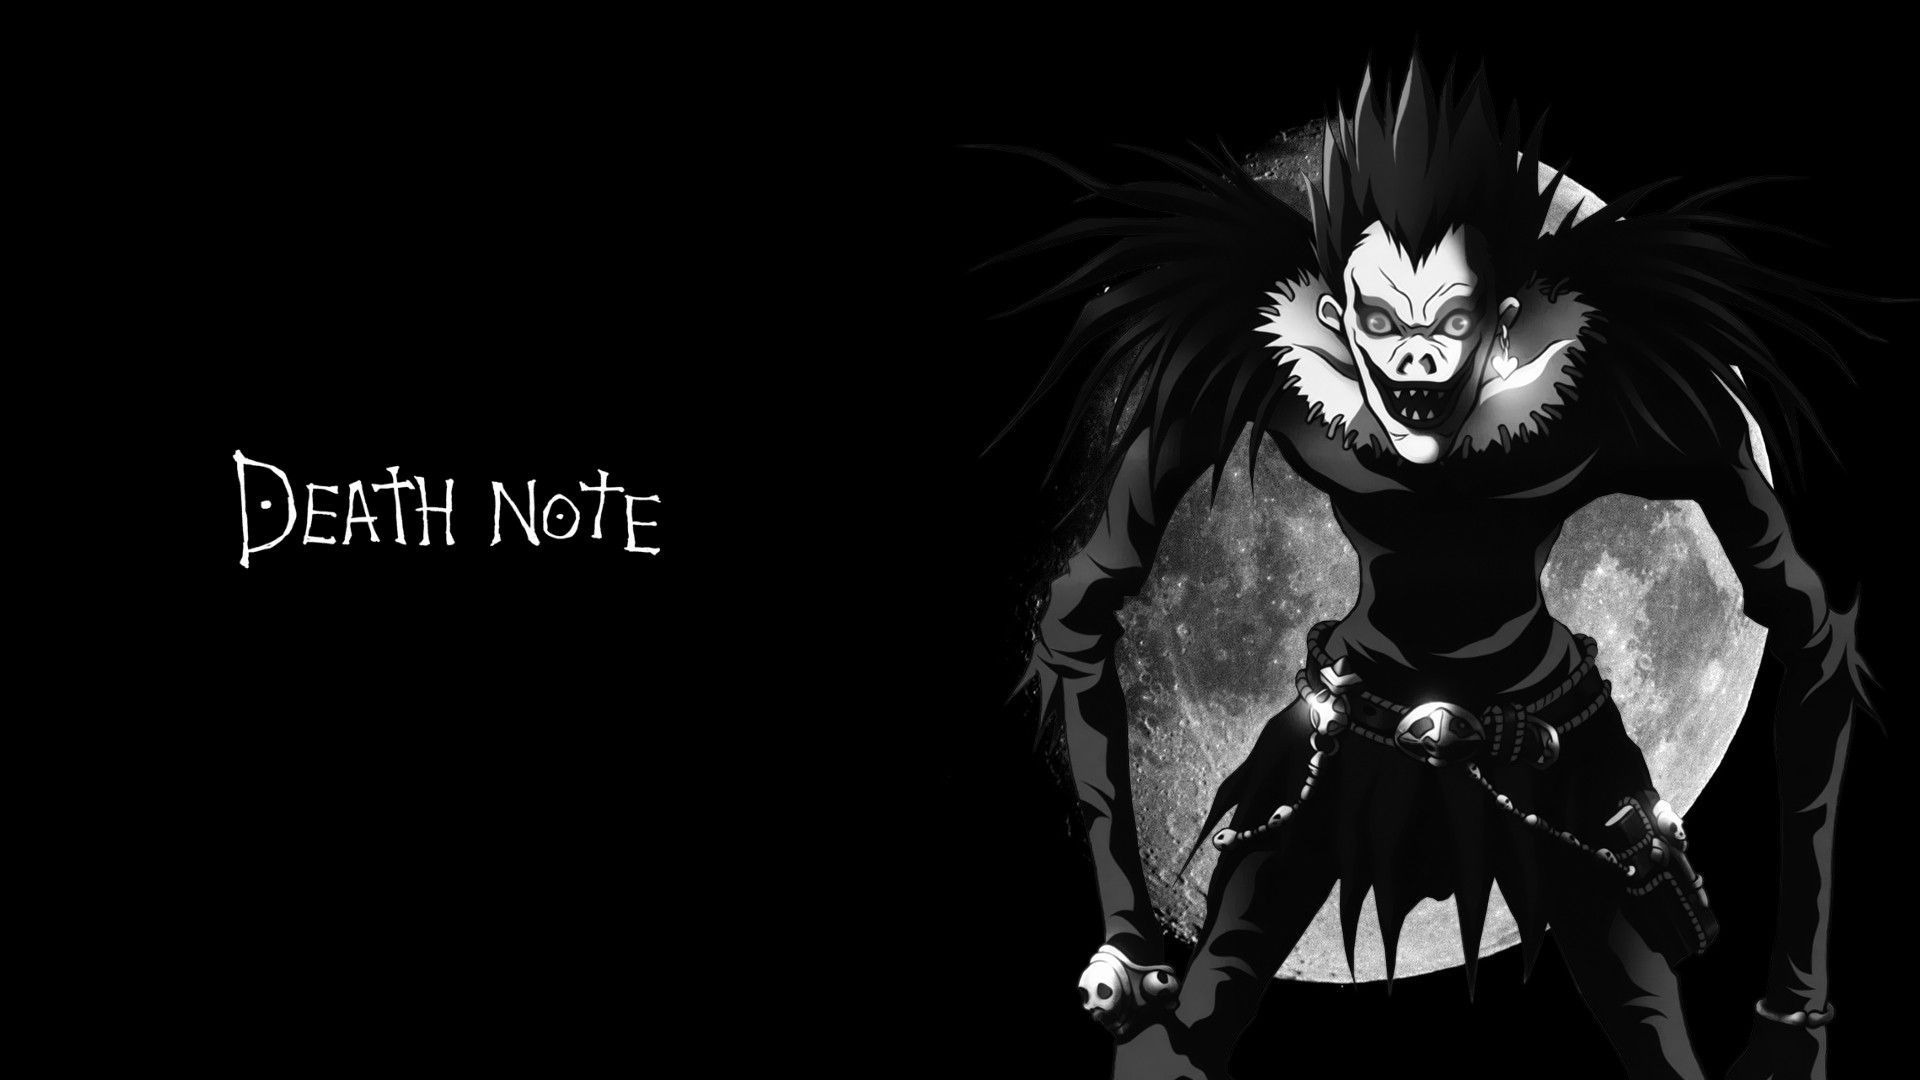 IMG_420723.jpg (1920×1080) Death note, Android wallpaper